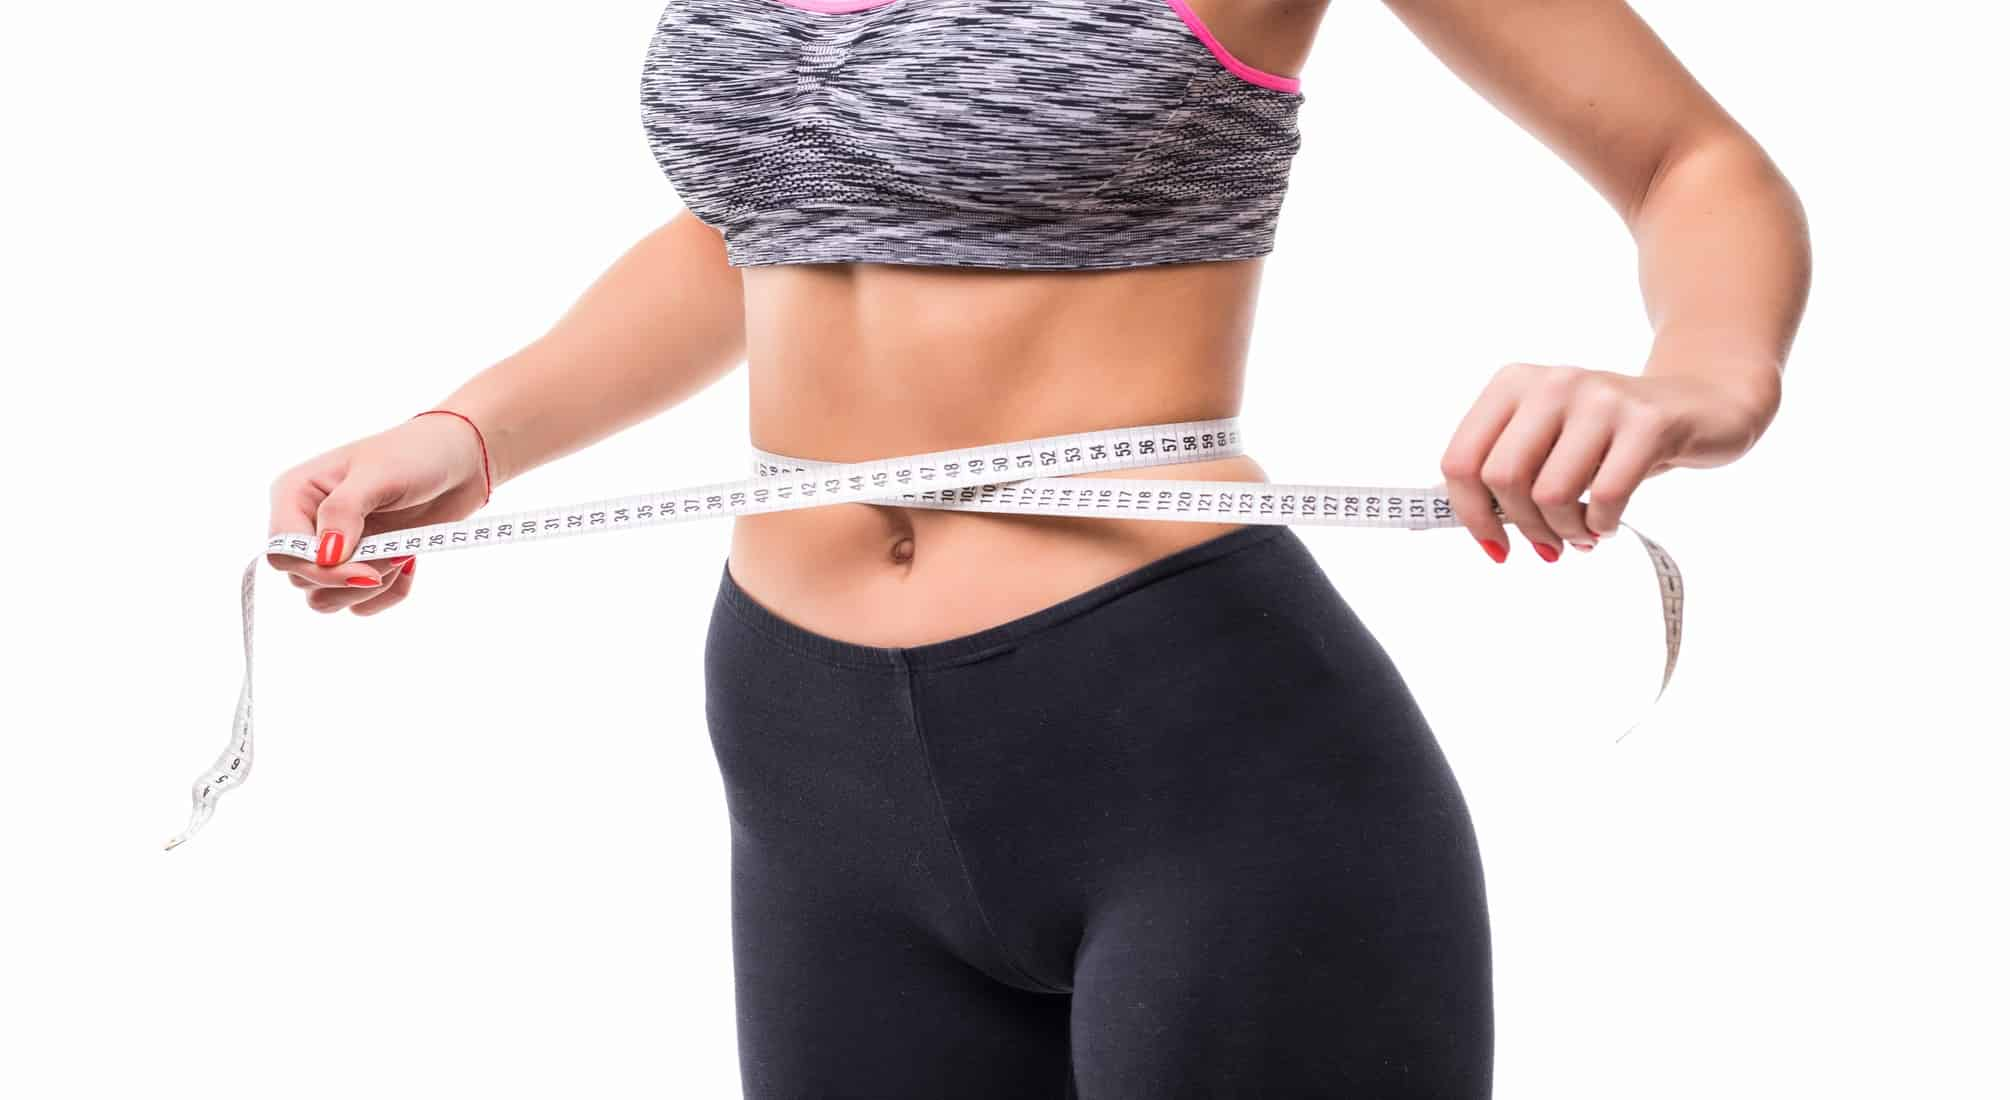 shed excess weight